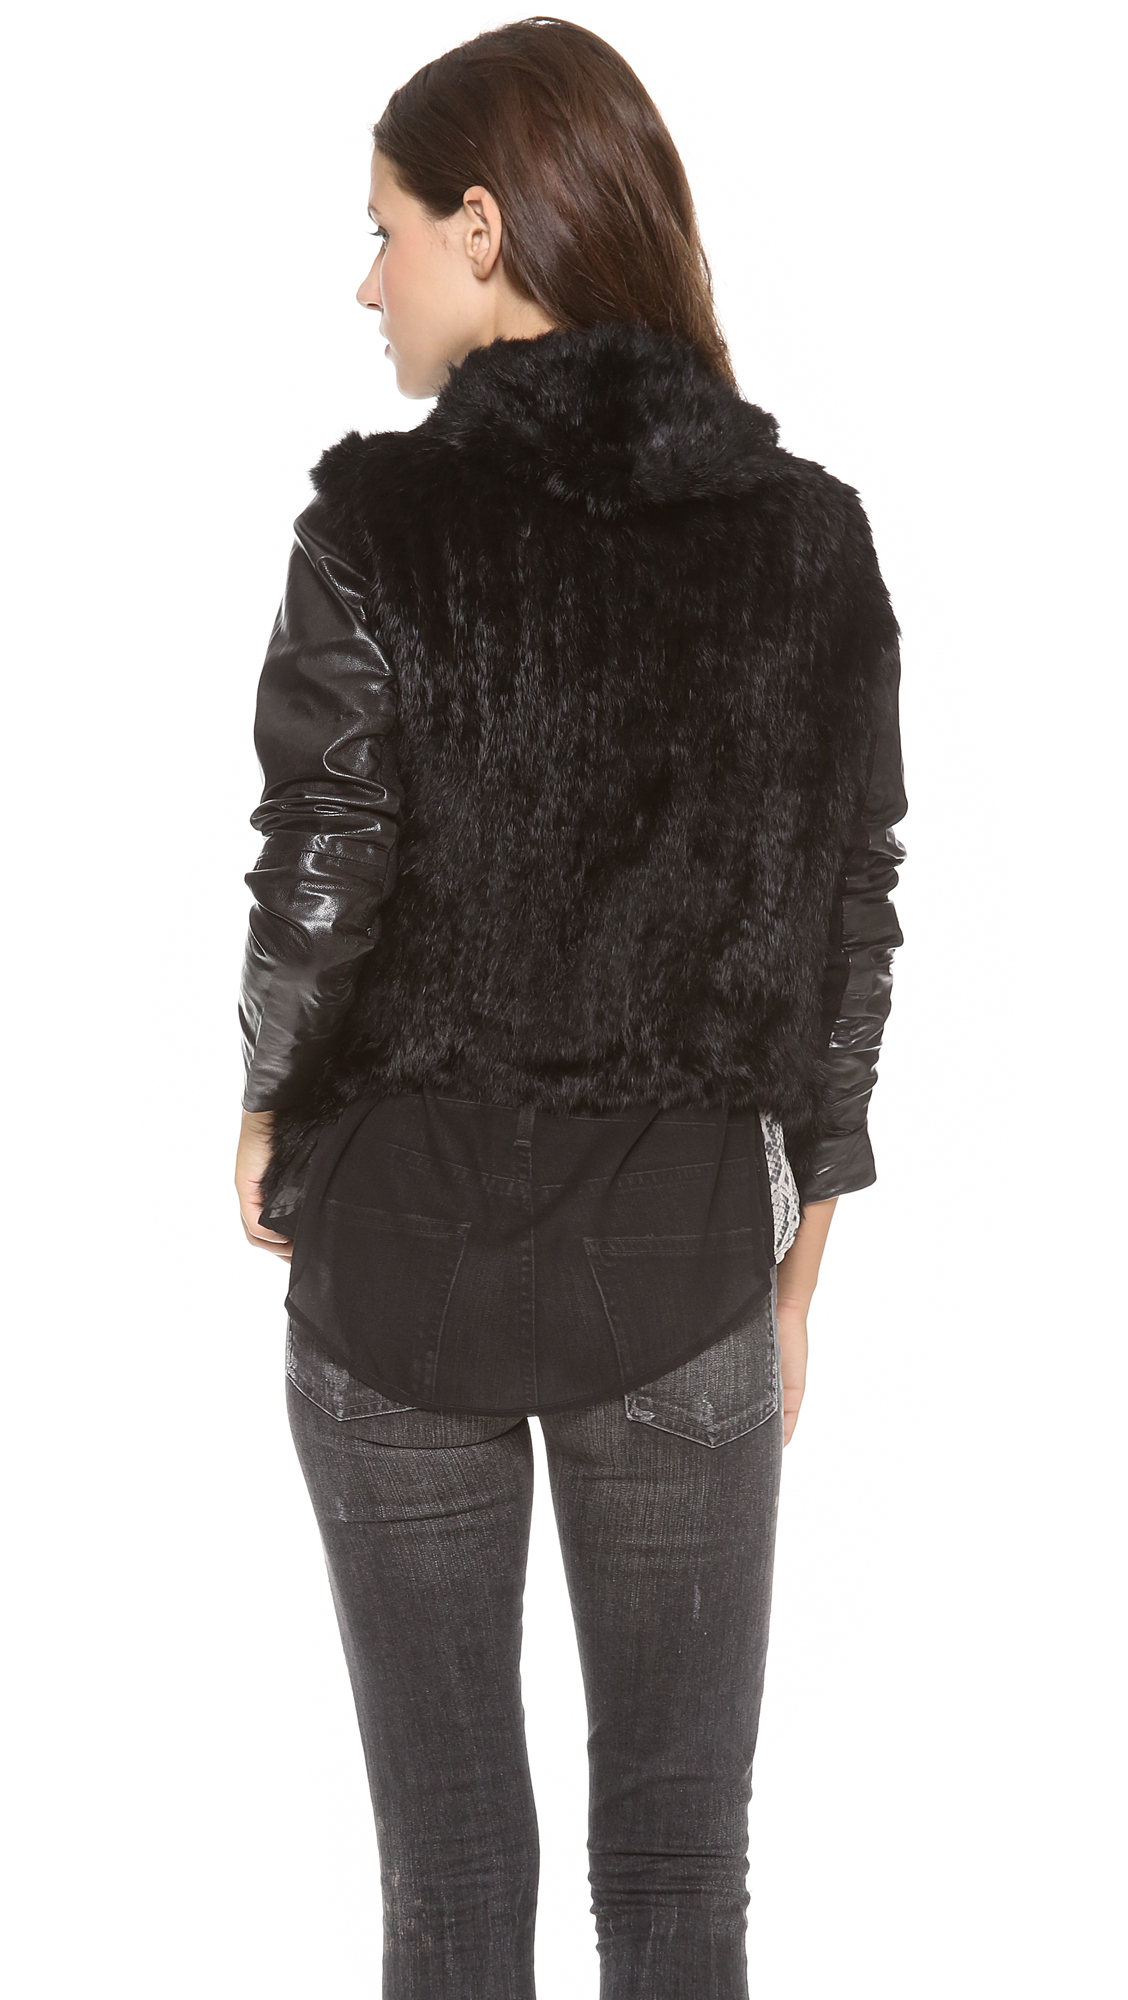 Lyst June Knit Fur Jacket With Leather Sleeves In Black